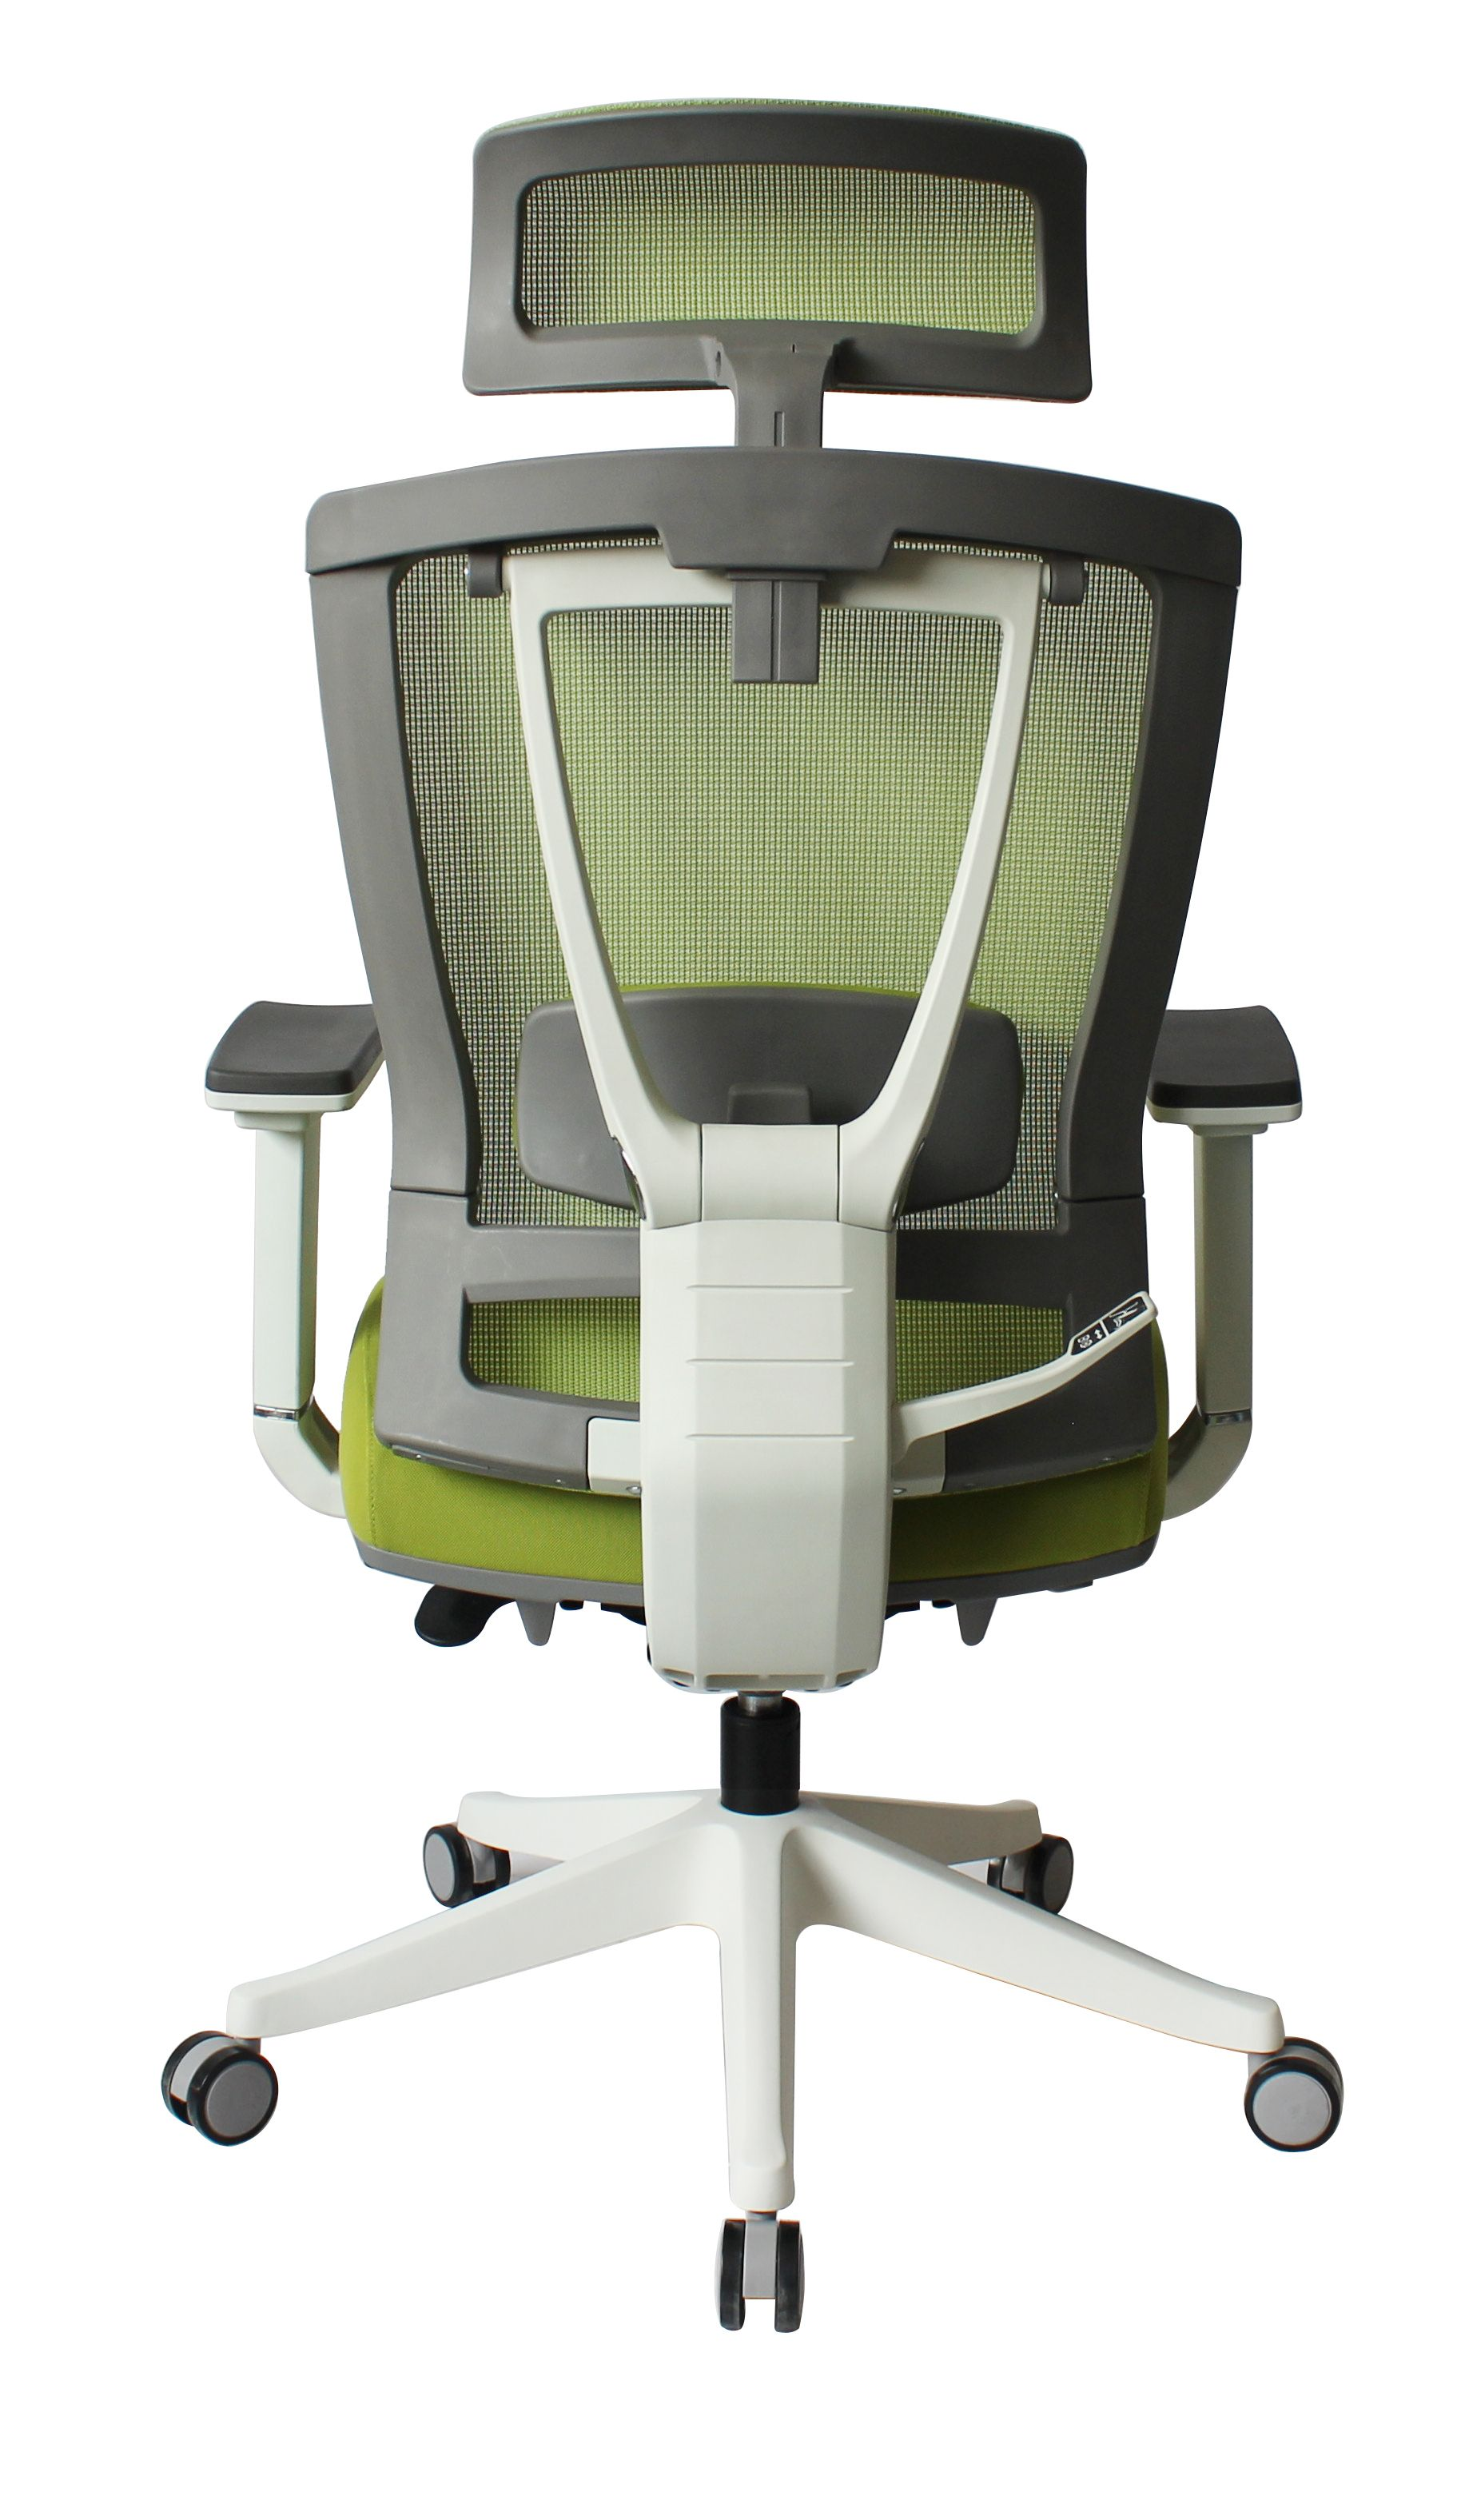 chair design back angle folding salon hot sales super comfortable white frame adjustable headrest and lumbar support